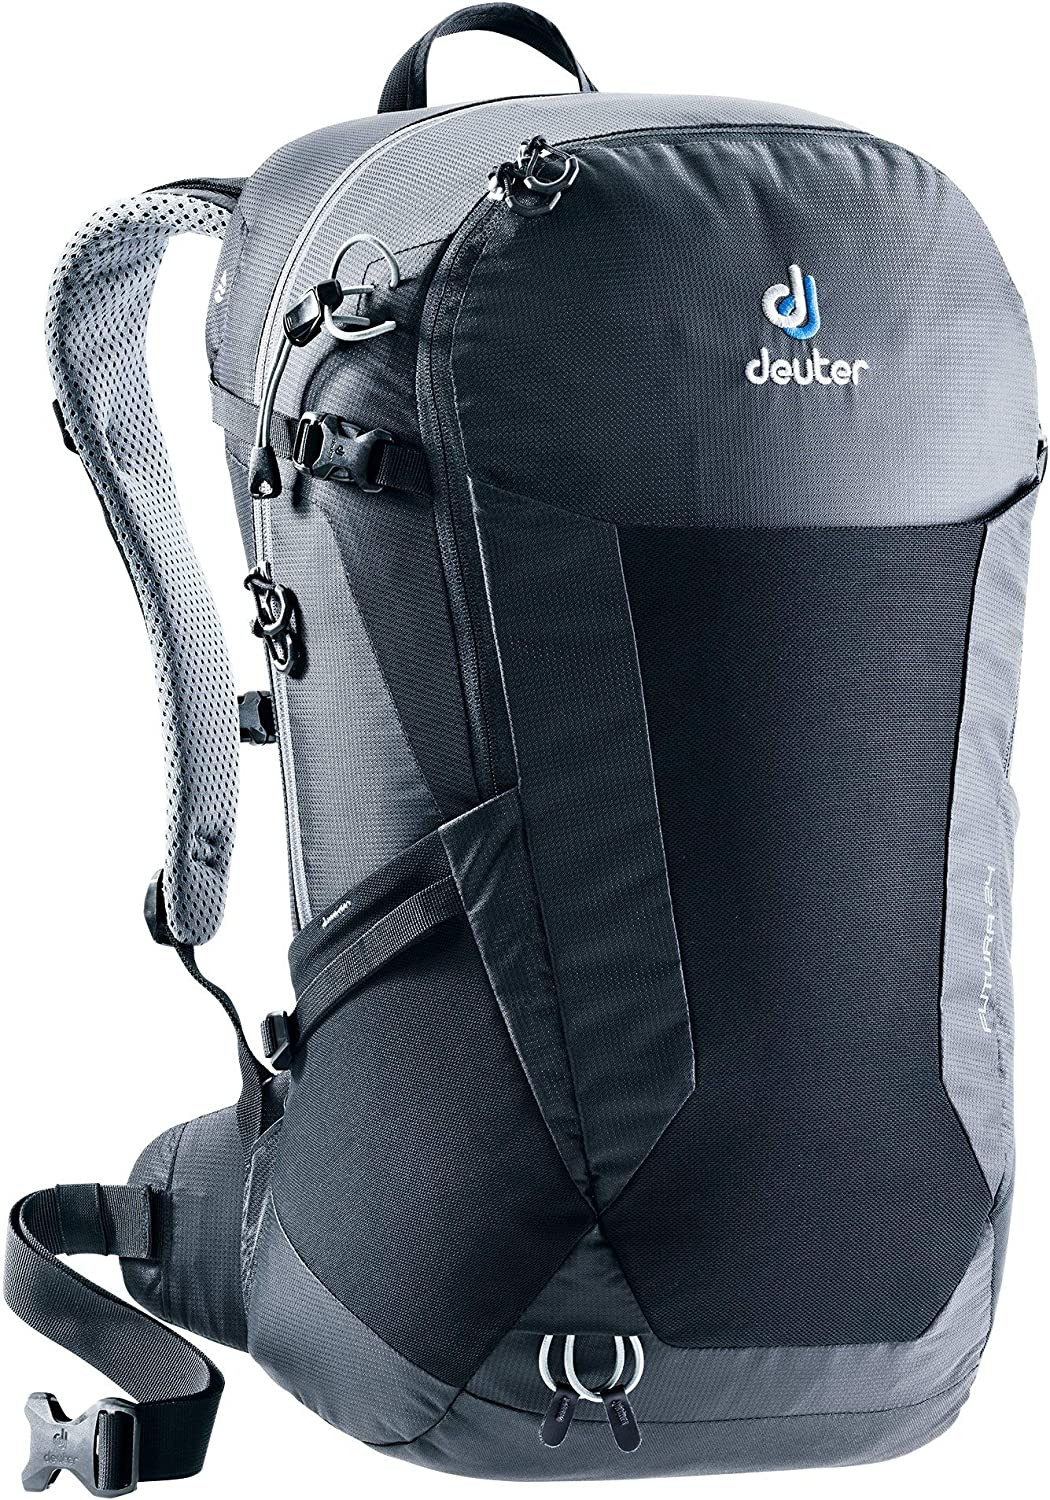 Deuter Casual Daypack Nashville-Davidson Mall Size Recommended Black One